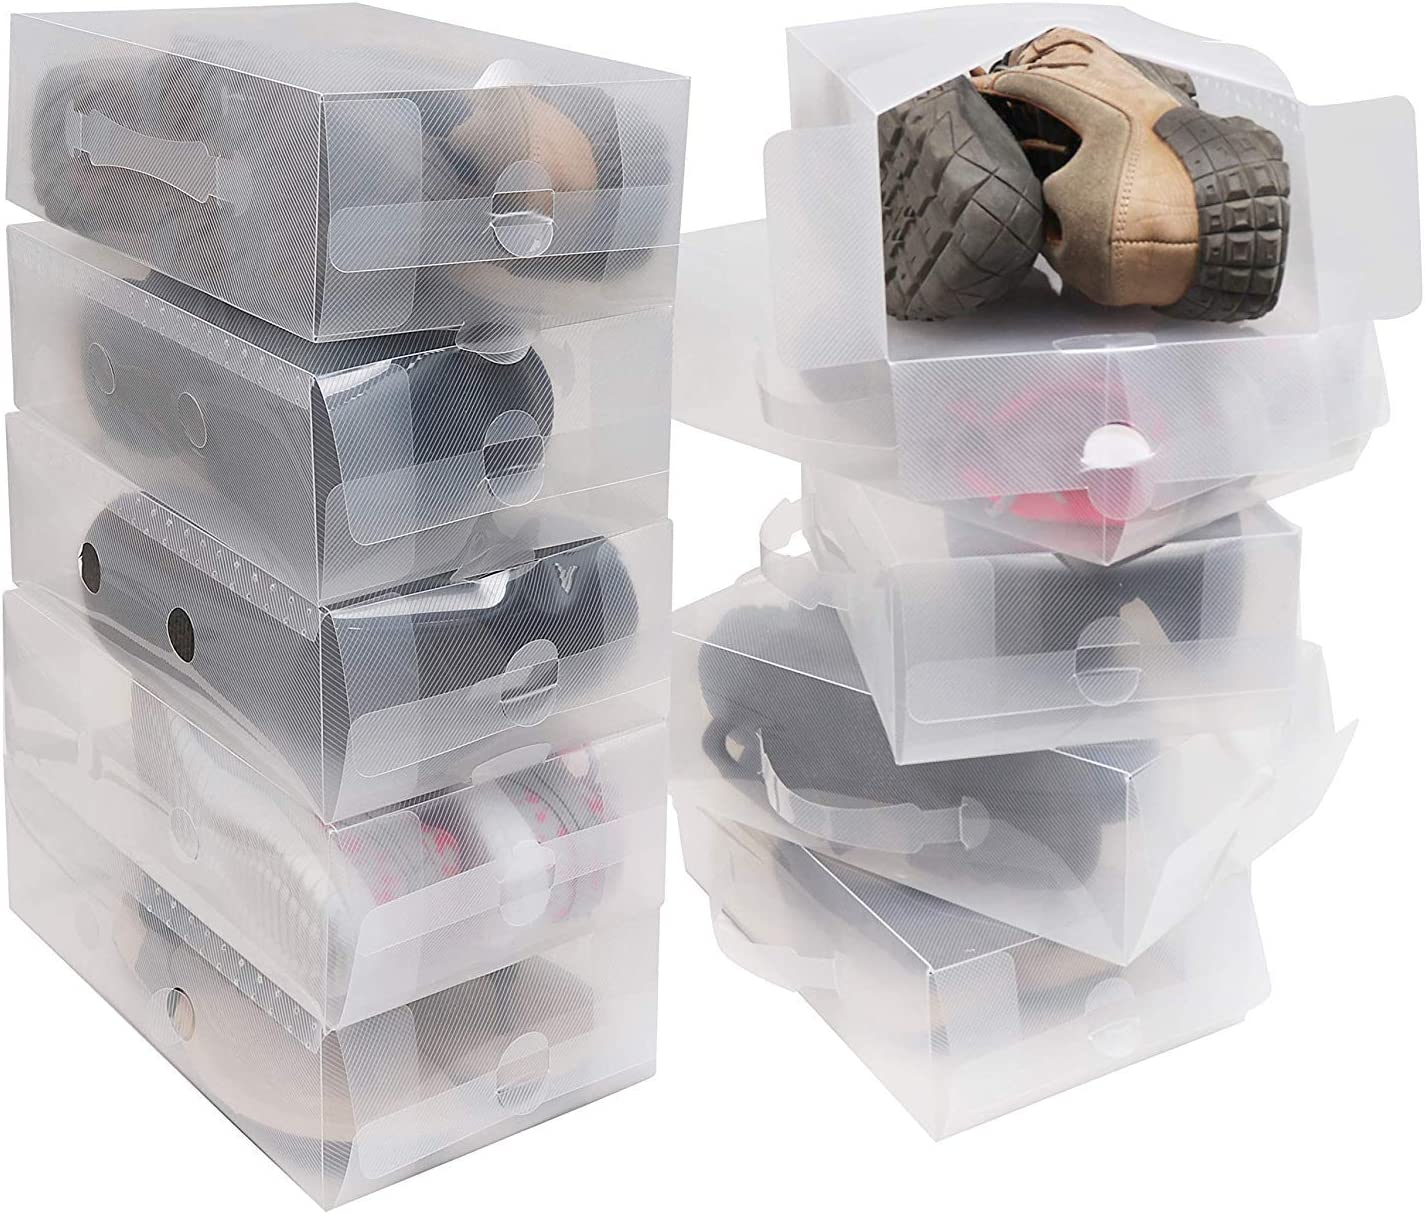 Shoe Storage Box 10 Pack - Clear Corrugated Plastic Shoe Boxes - Collapsible Foldable Shoe Organizer Can Fit Shoes, sandals - Ideal for Travel